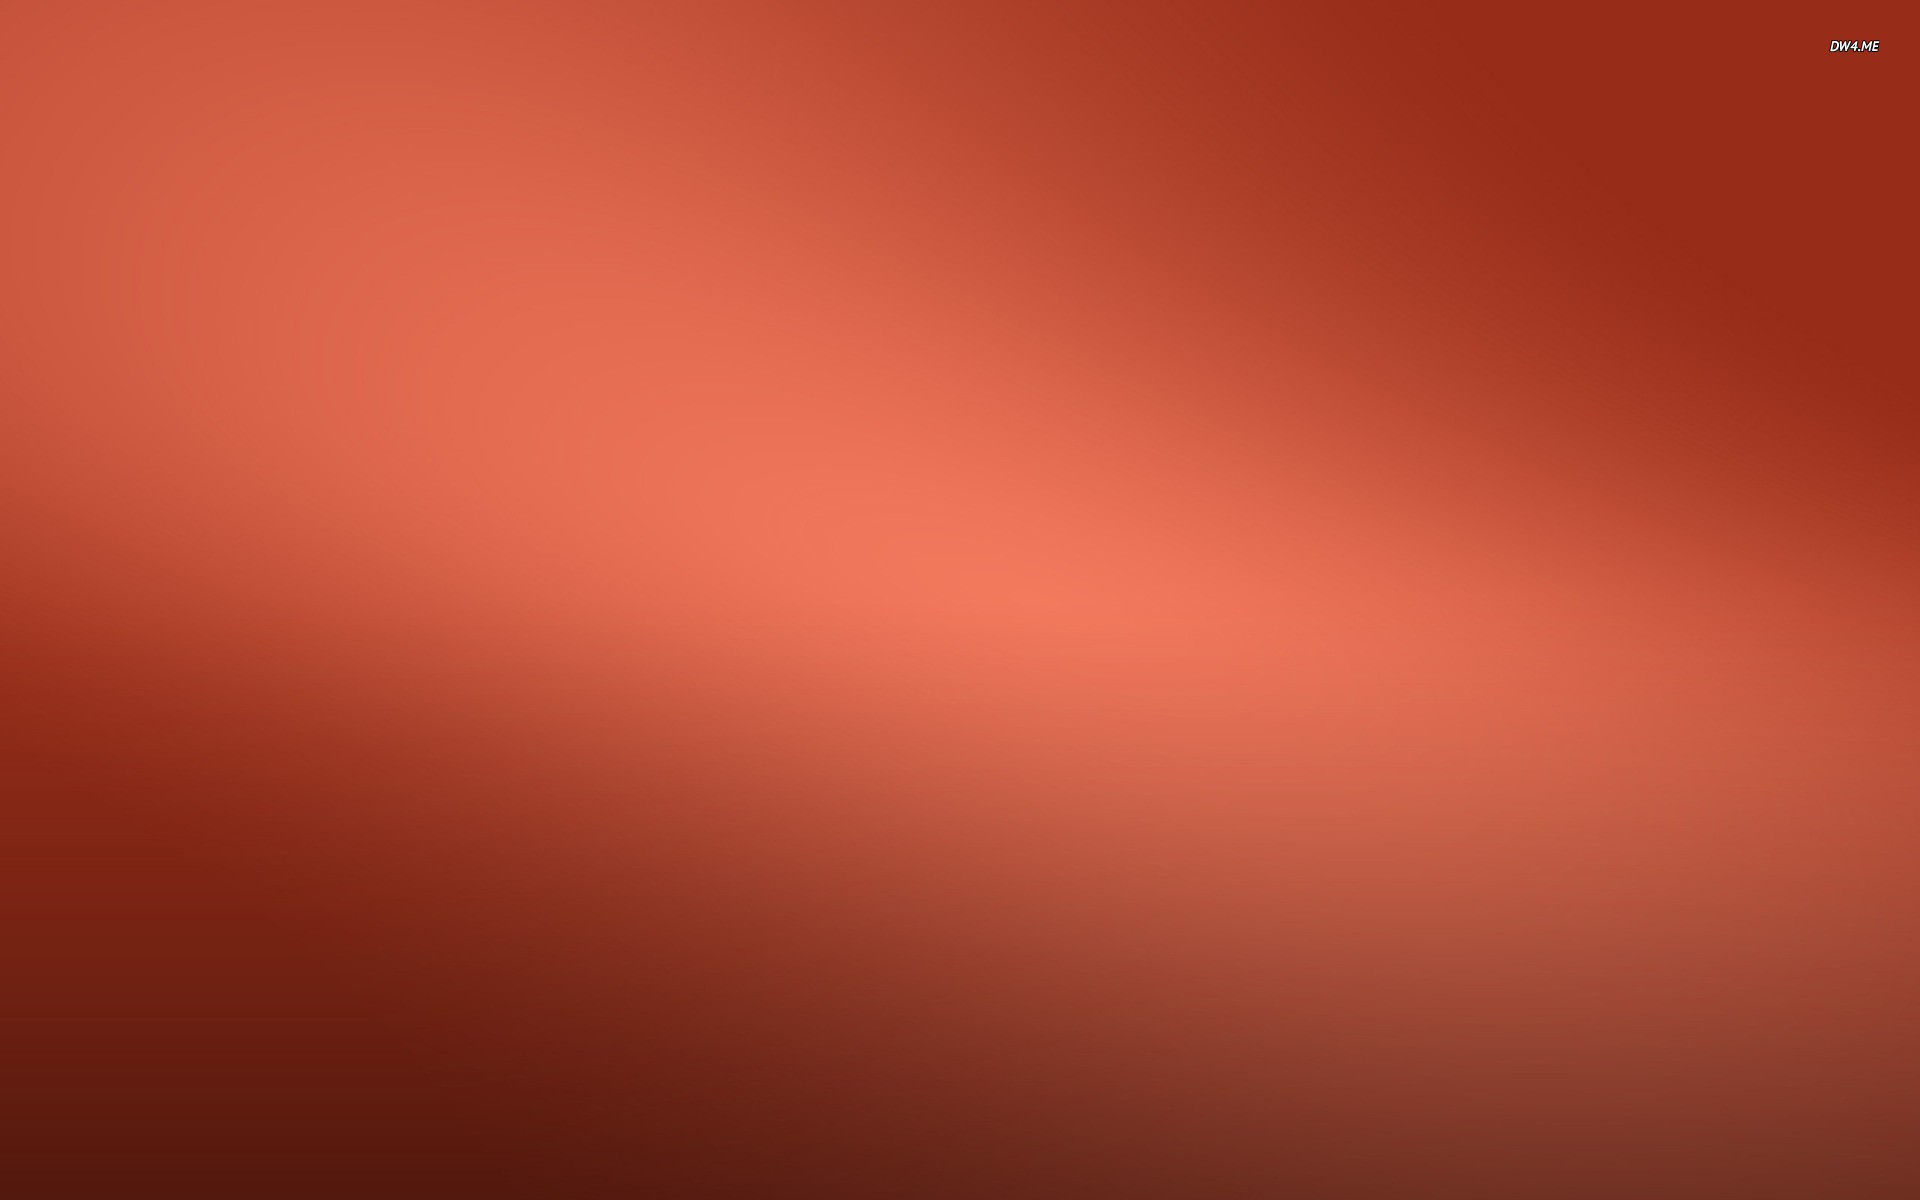 Copper wallpaper   Minimalistic wallpapers   388 1920x1200